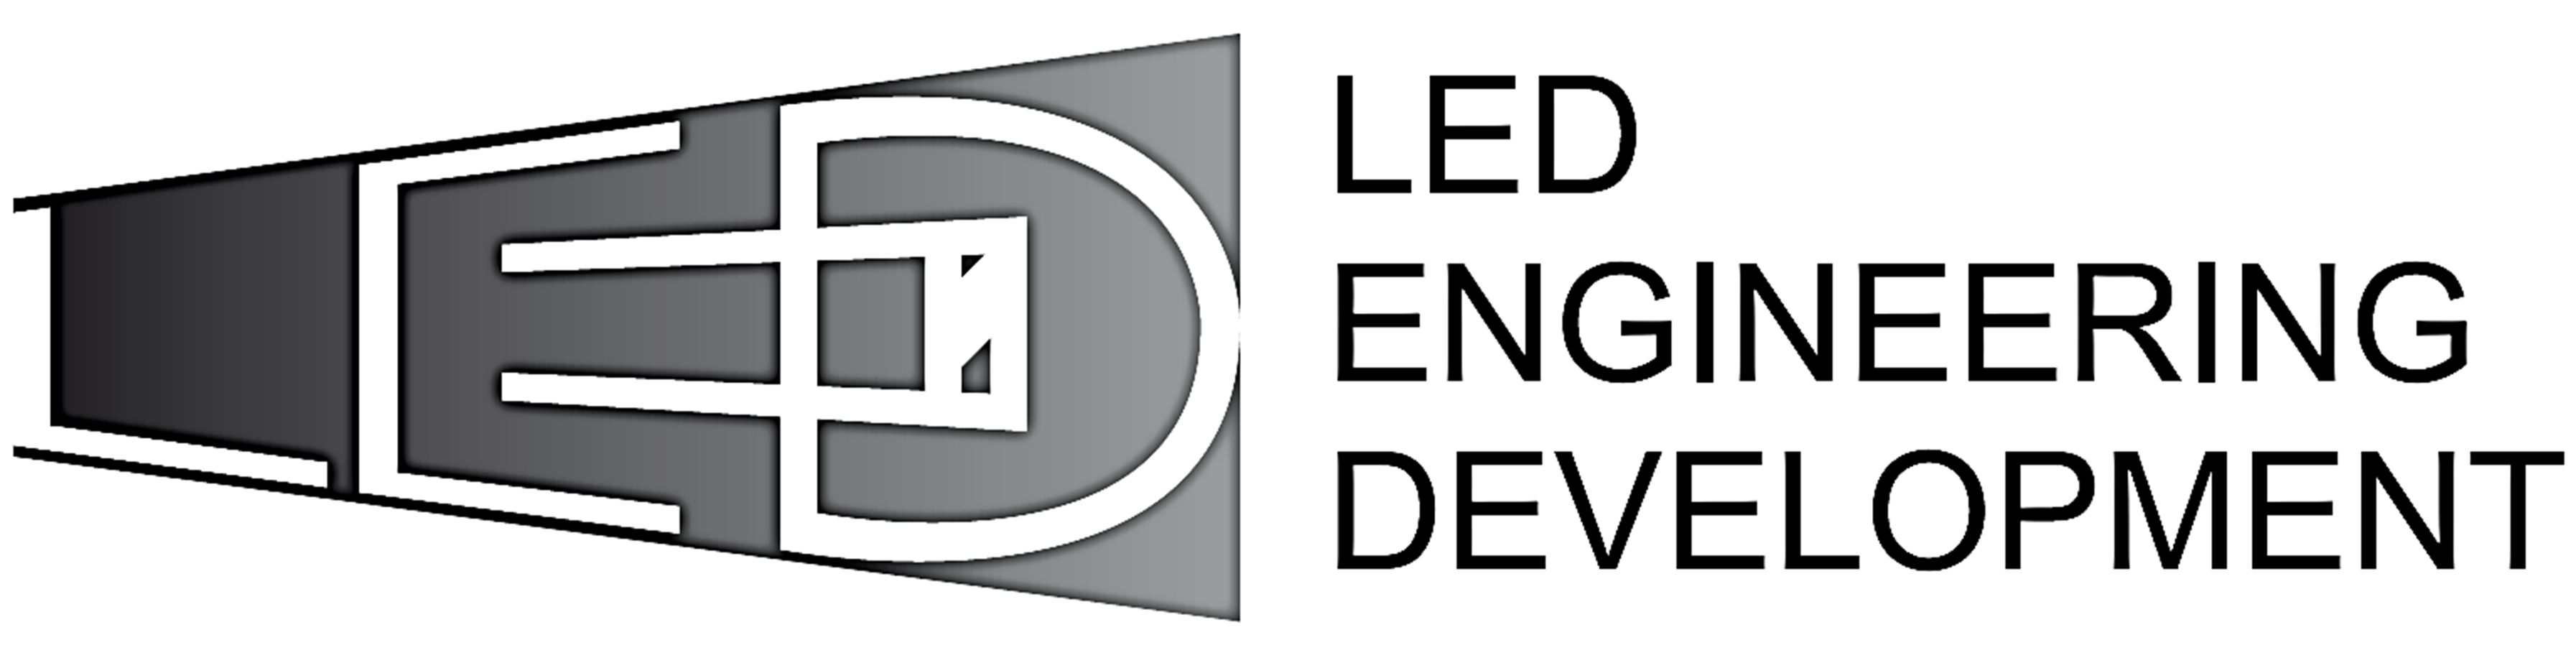 LED ENGINEERING DEVELOPMENT